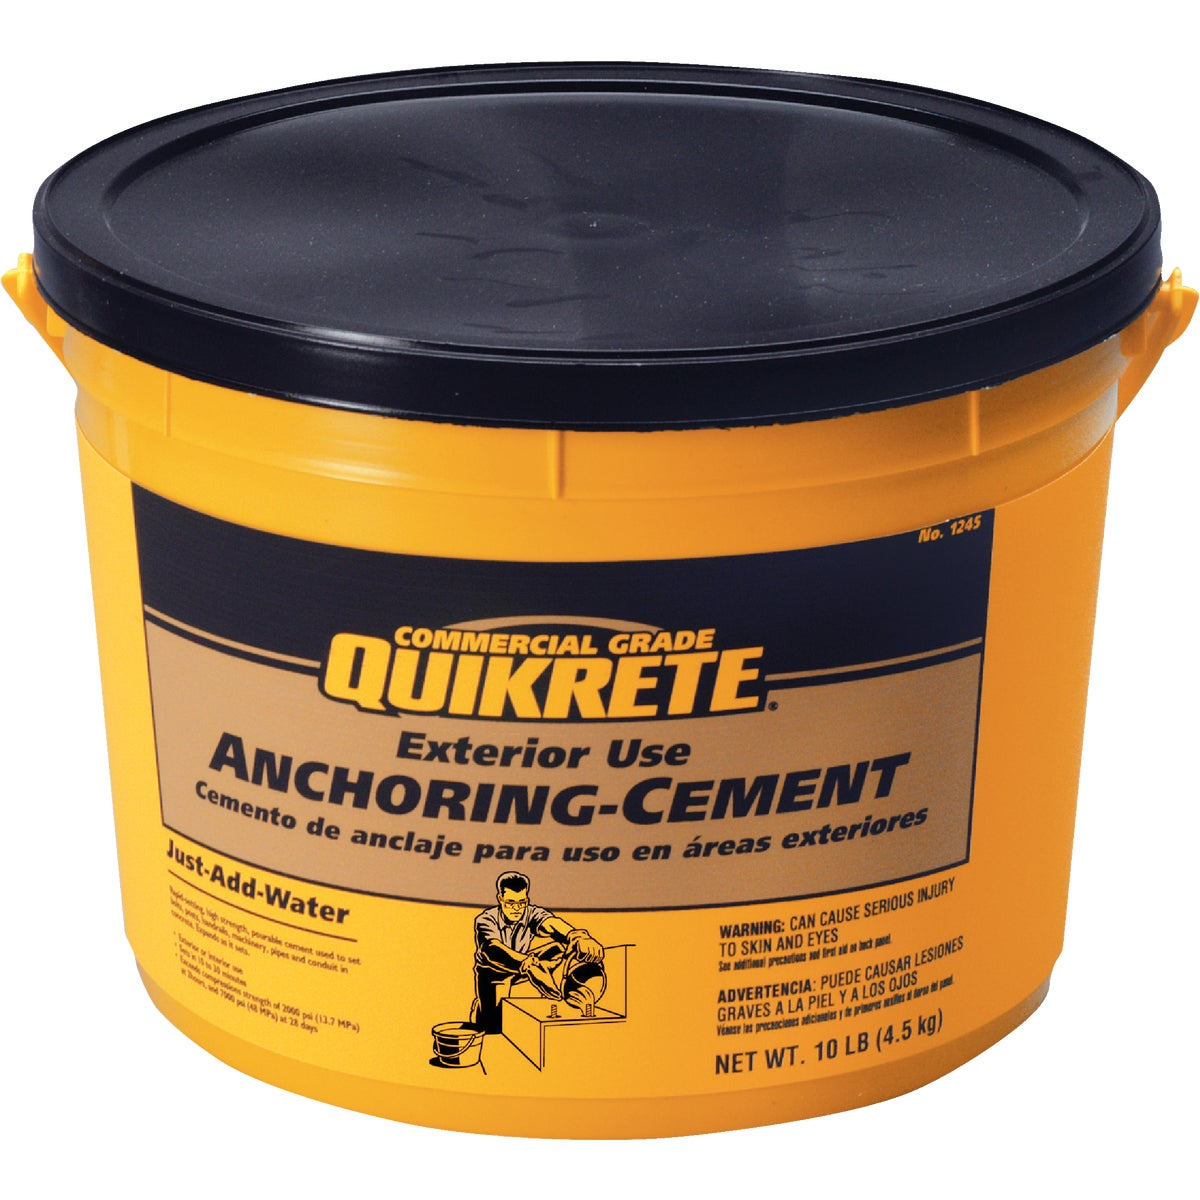 Quikrete 10LB ANCHORING CEMENT 1245-11